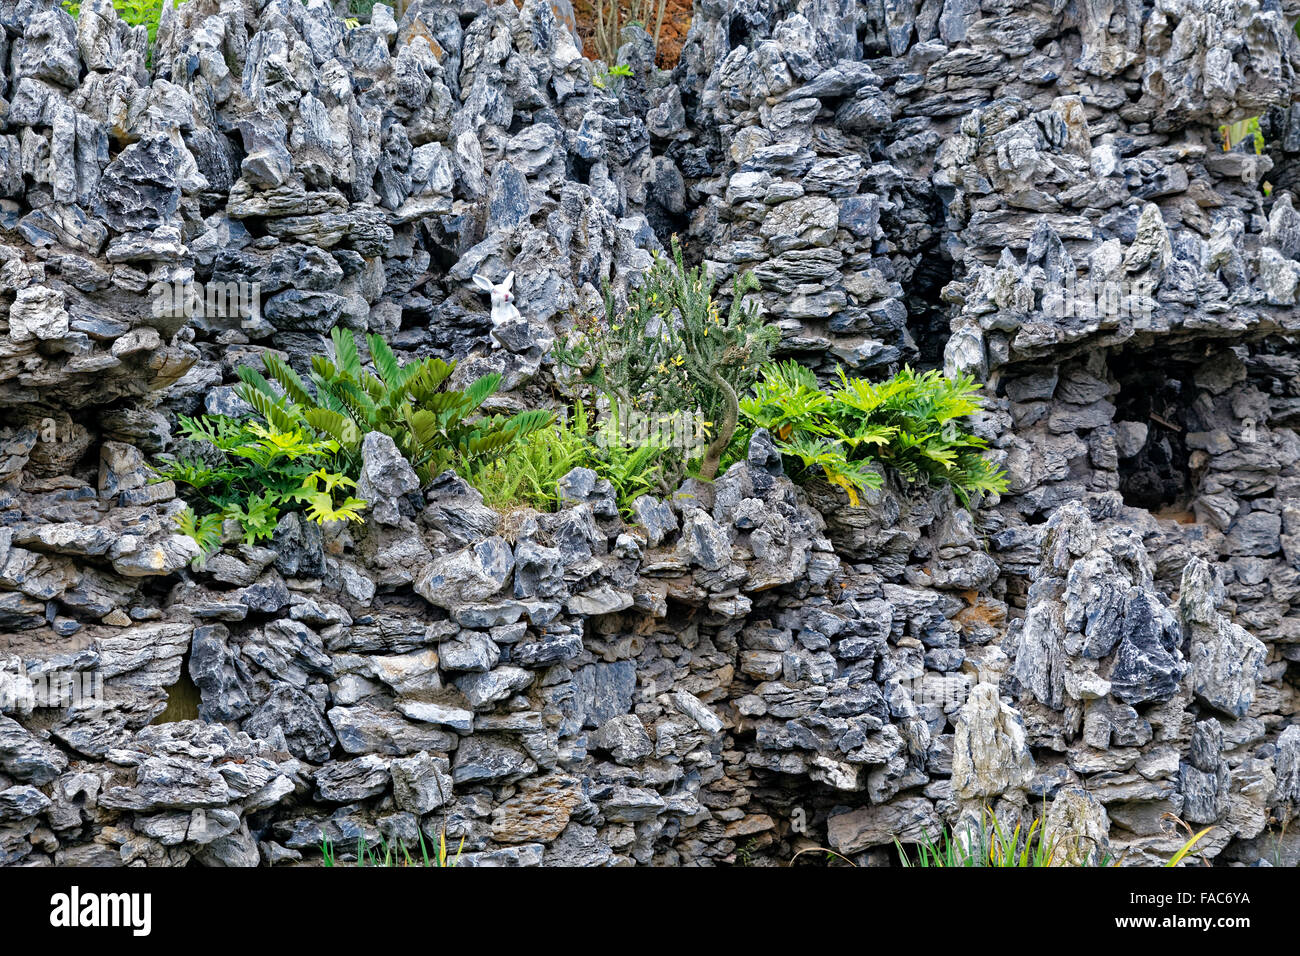 hard landscaping, stone and grass - Stock Image